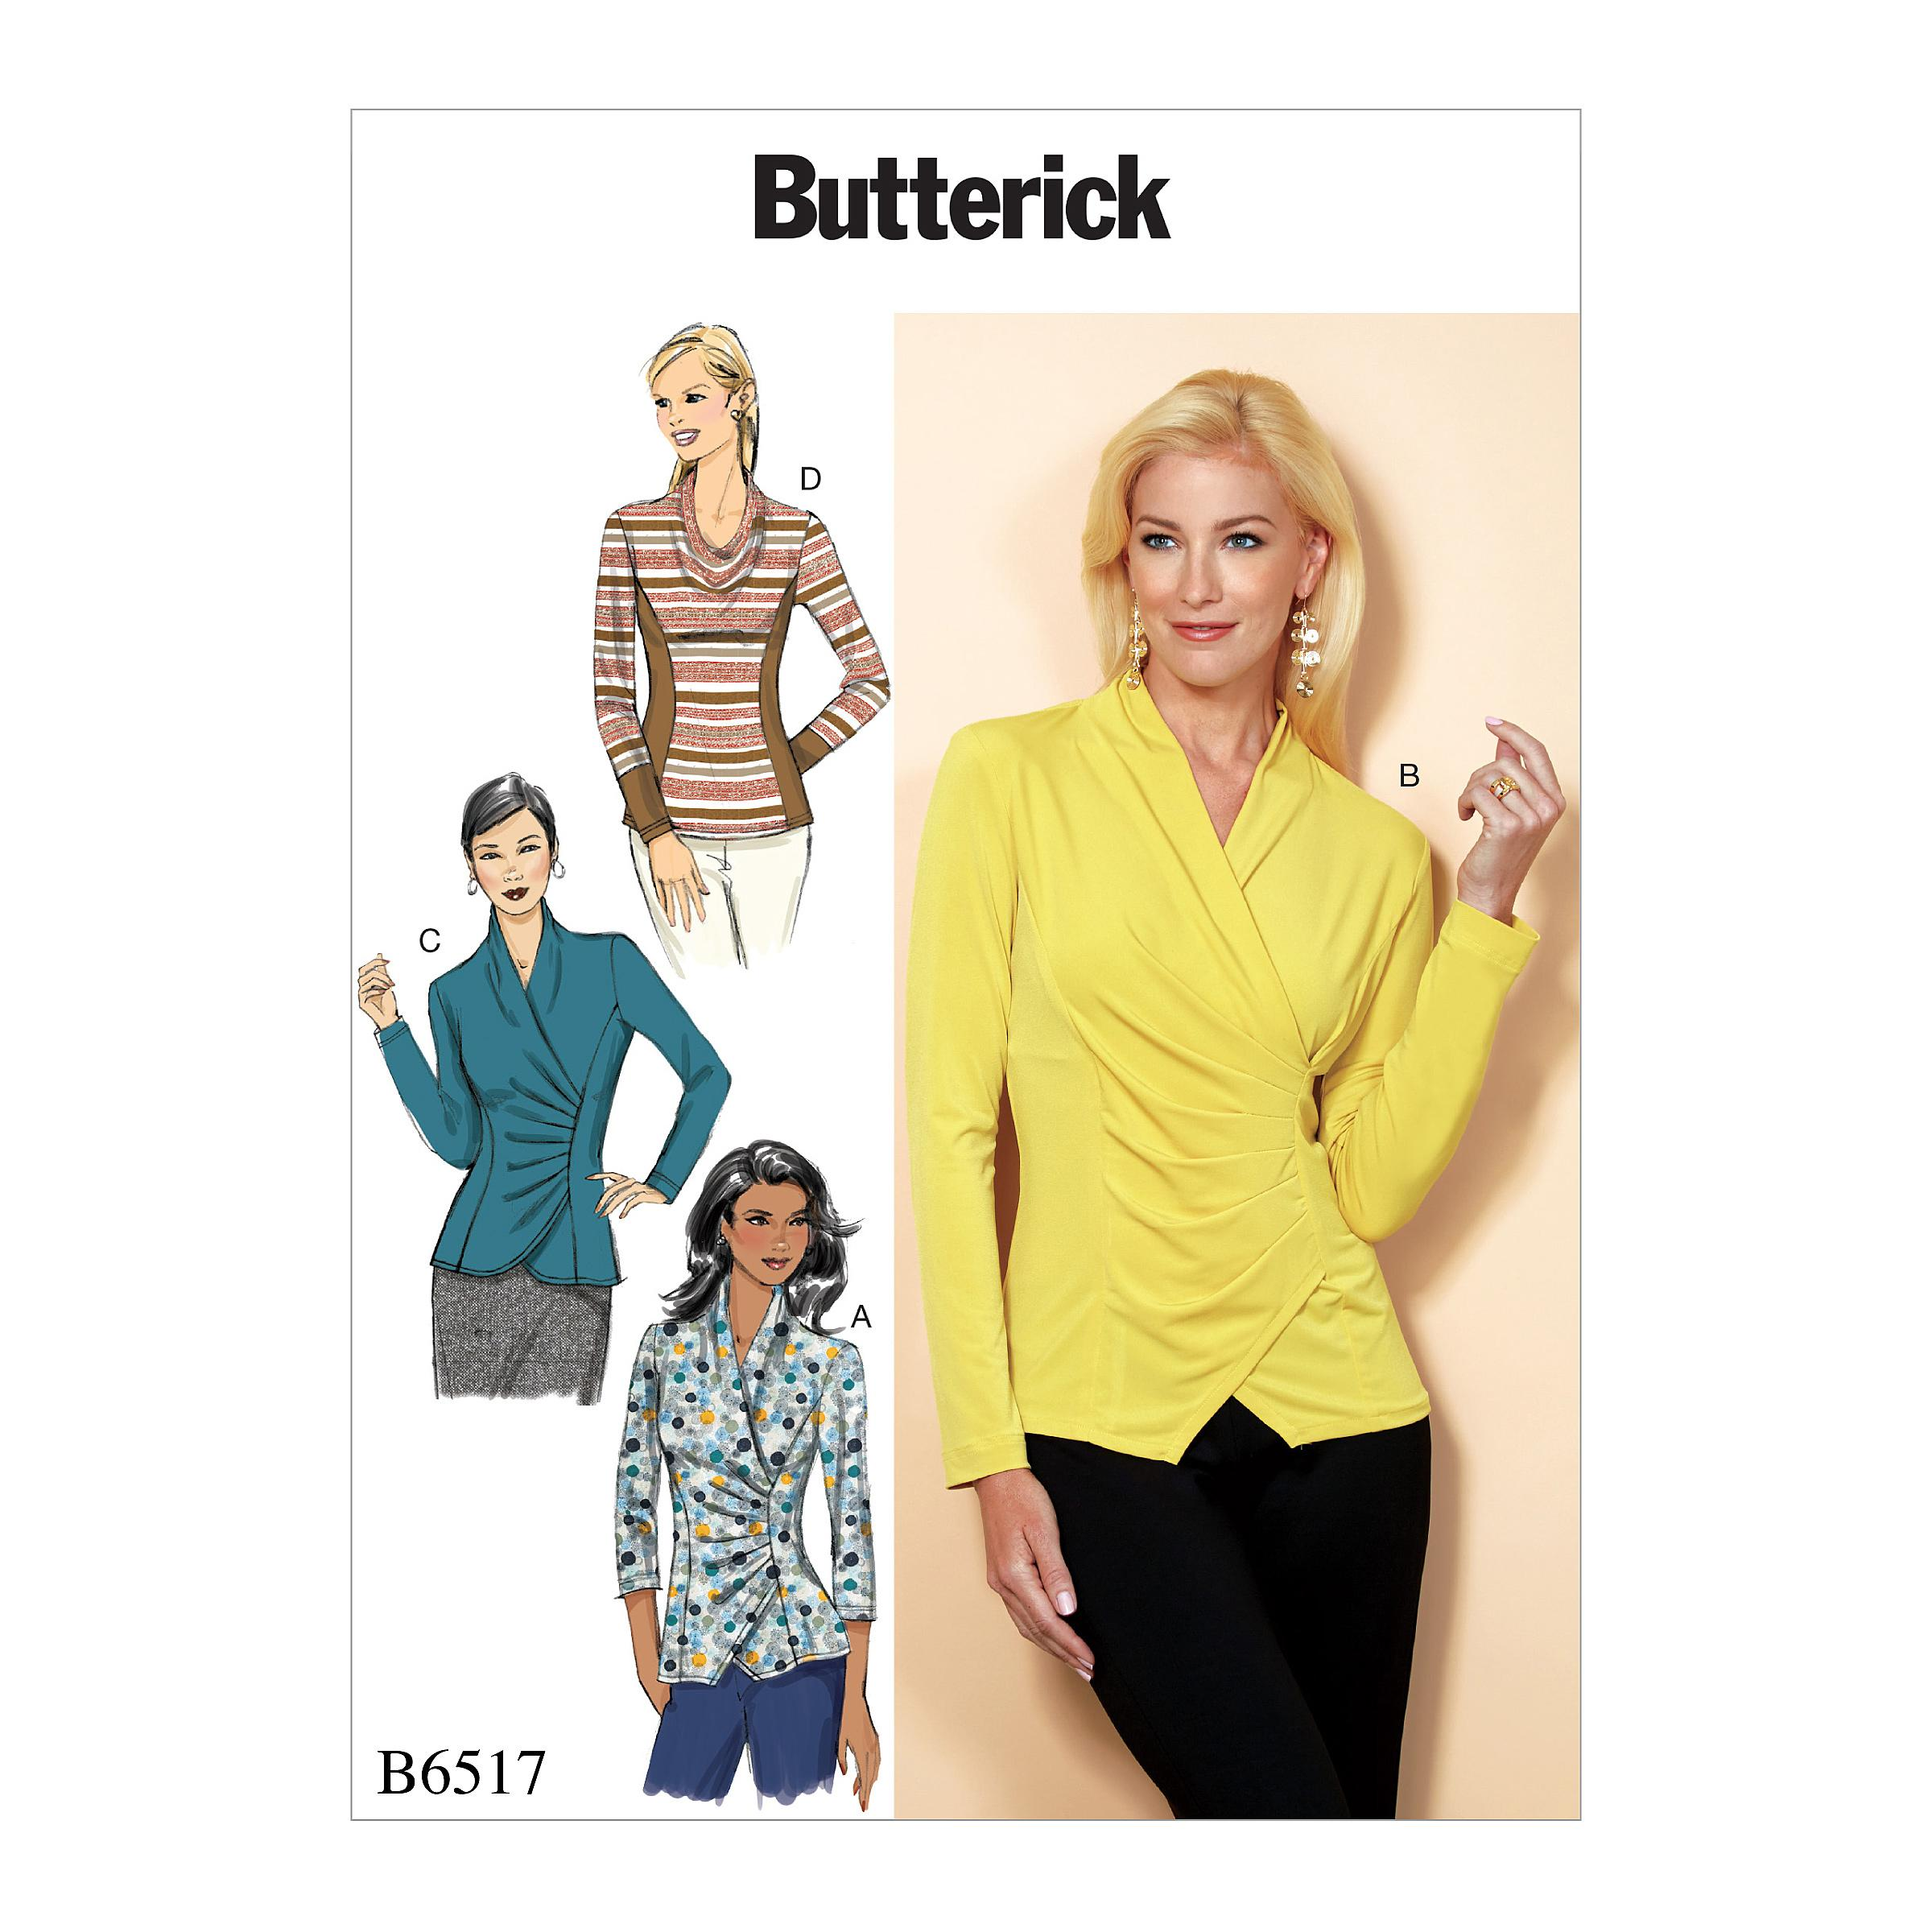 Butterick B6517 Misses' Top with Pleat and Options